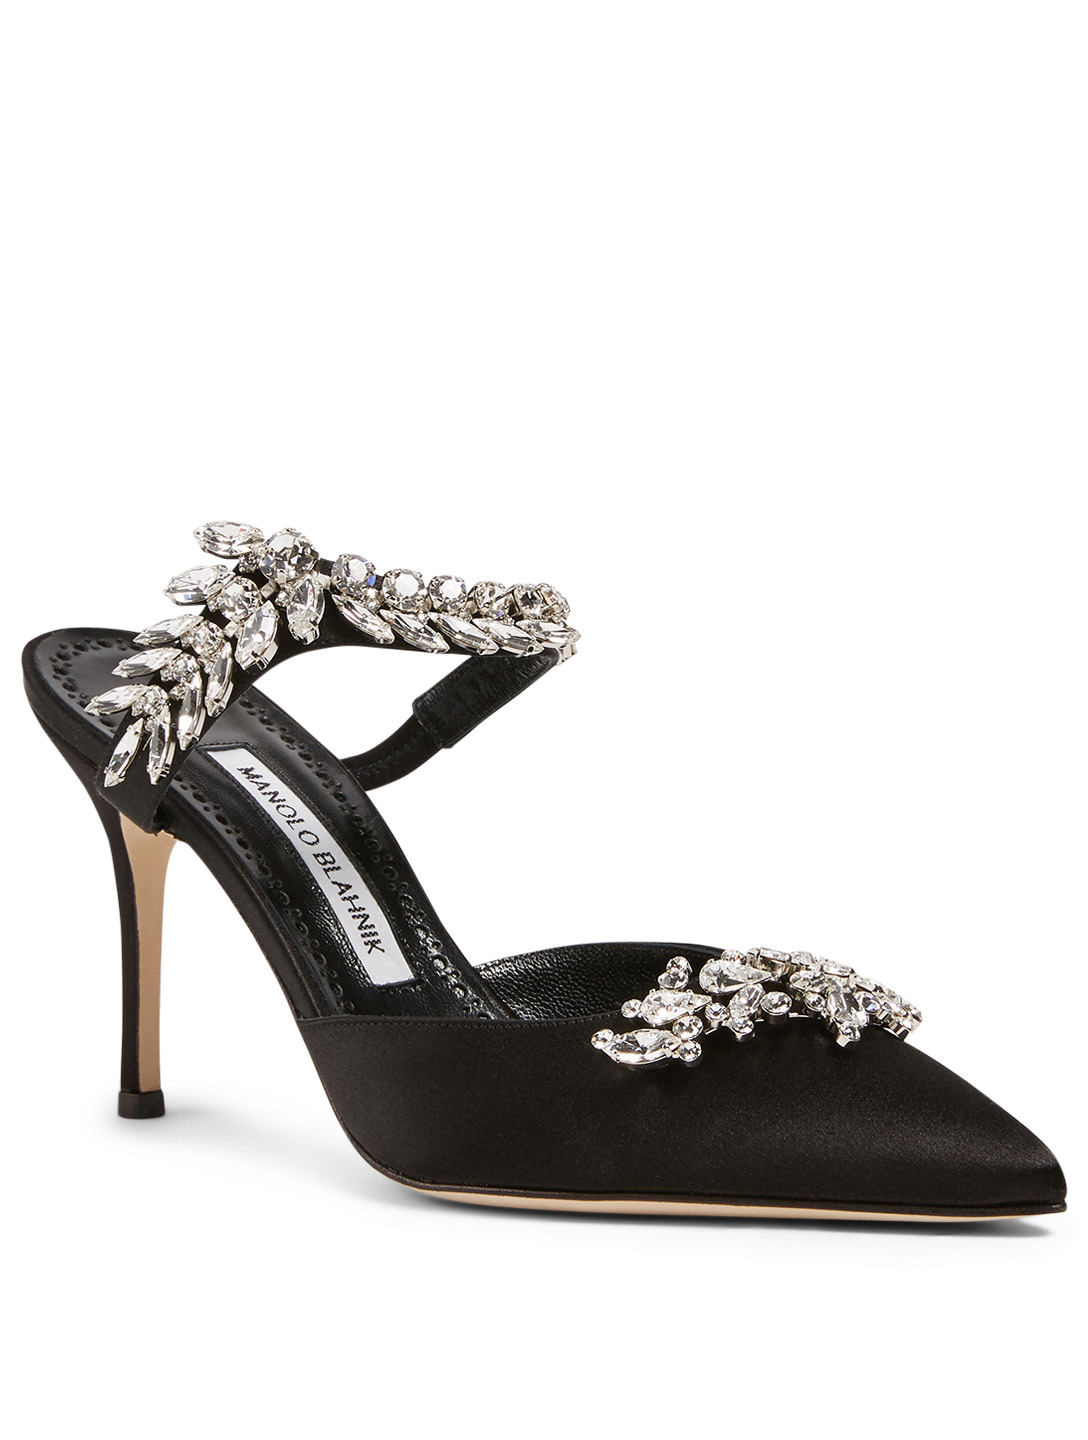 MANOLO BLAHNIK Lurum Satin Mules With Crystal Embellishment Women's Black